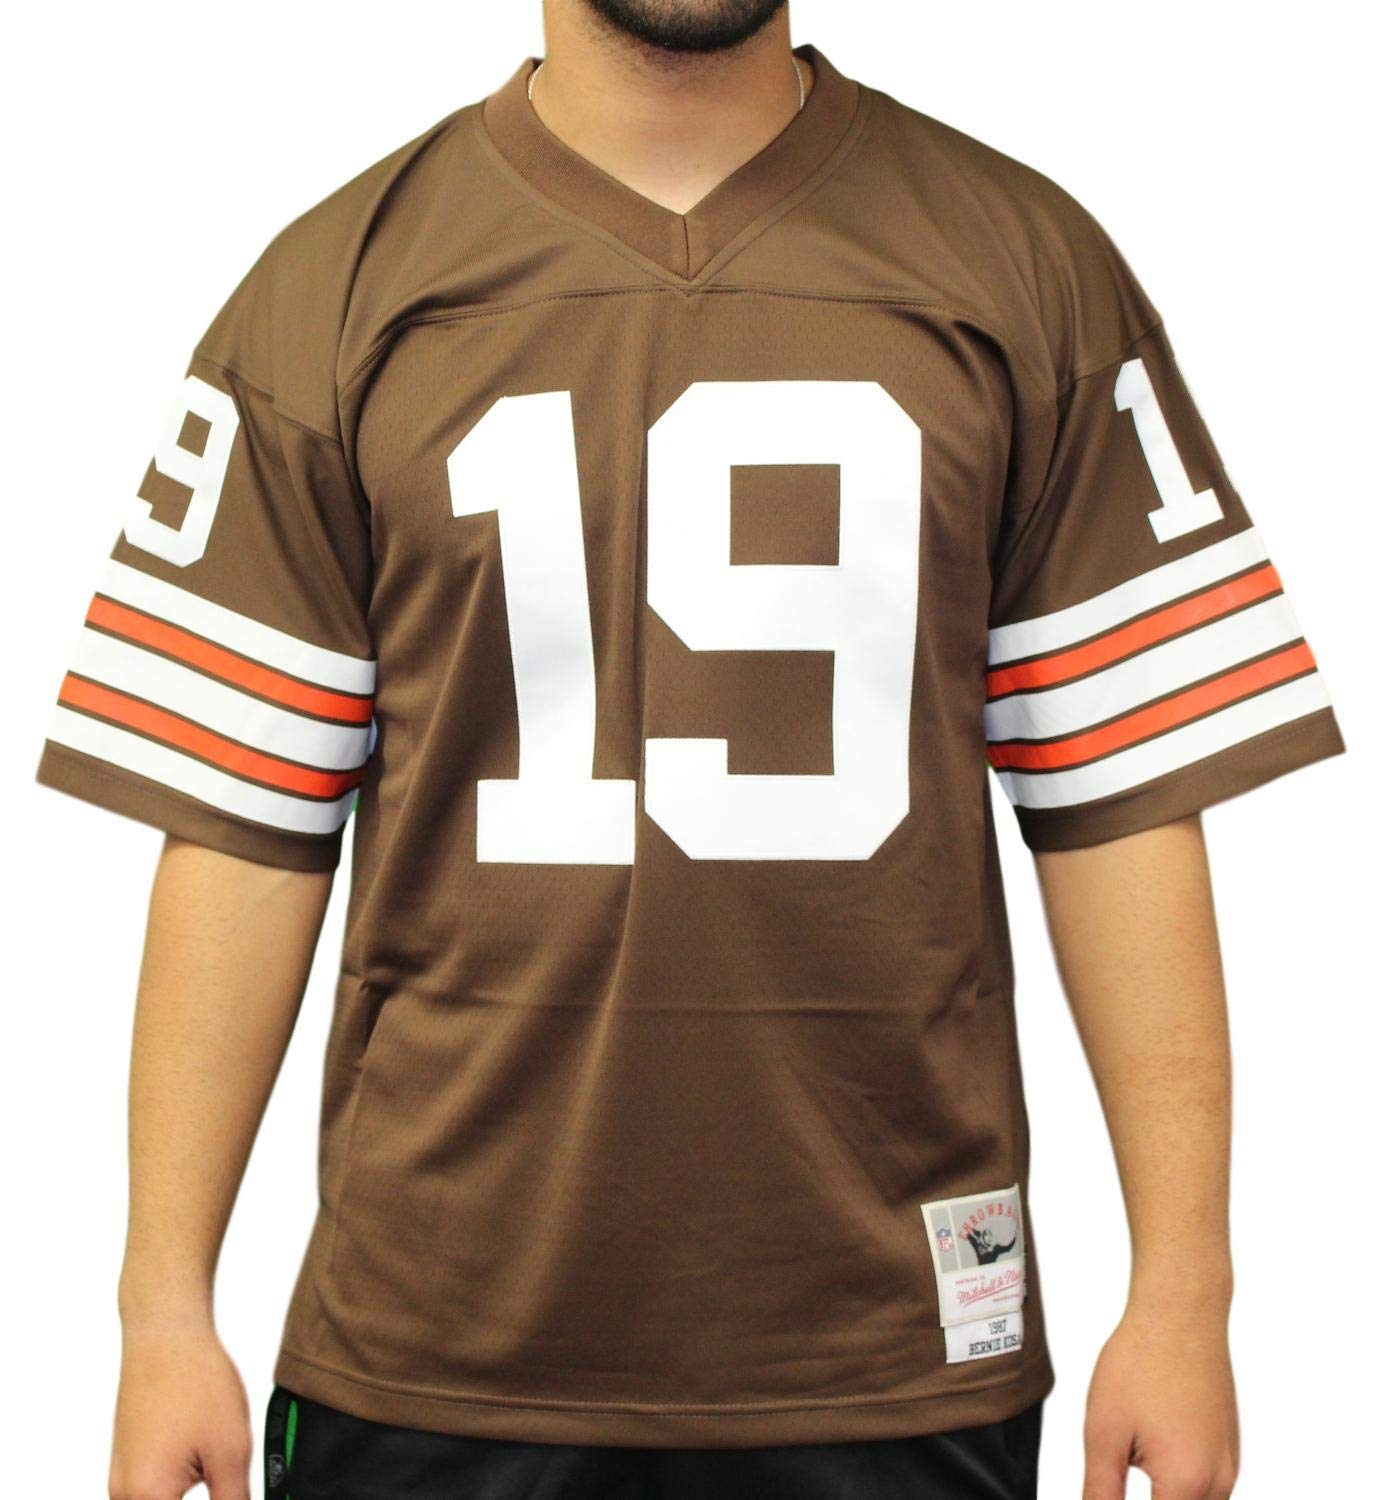 hot sale online df8b0 8e327 Amazon.com : Mitchell & Ness Bernie Kosar Cleveland Browns ...